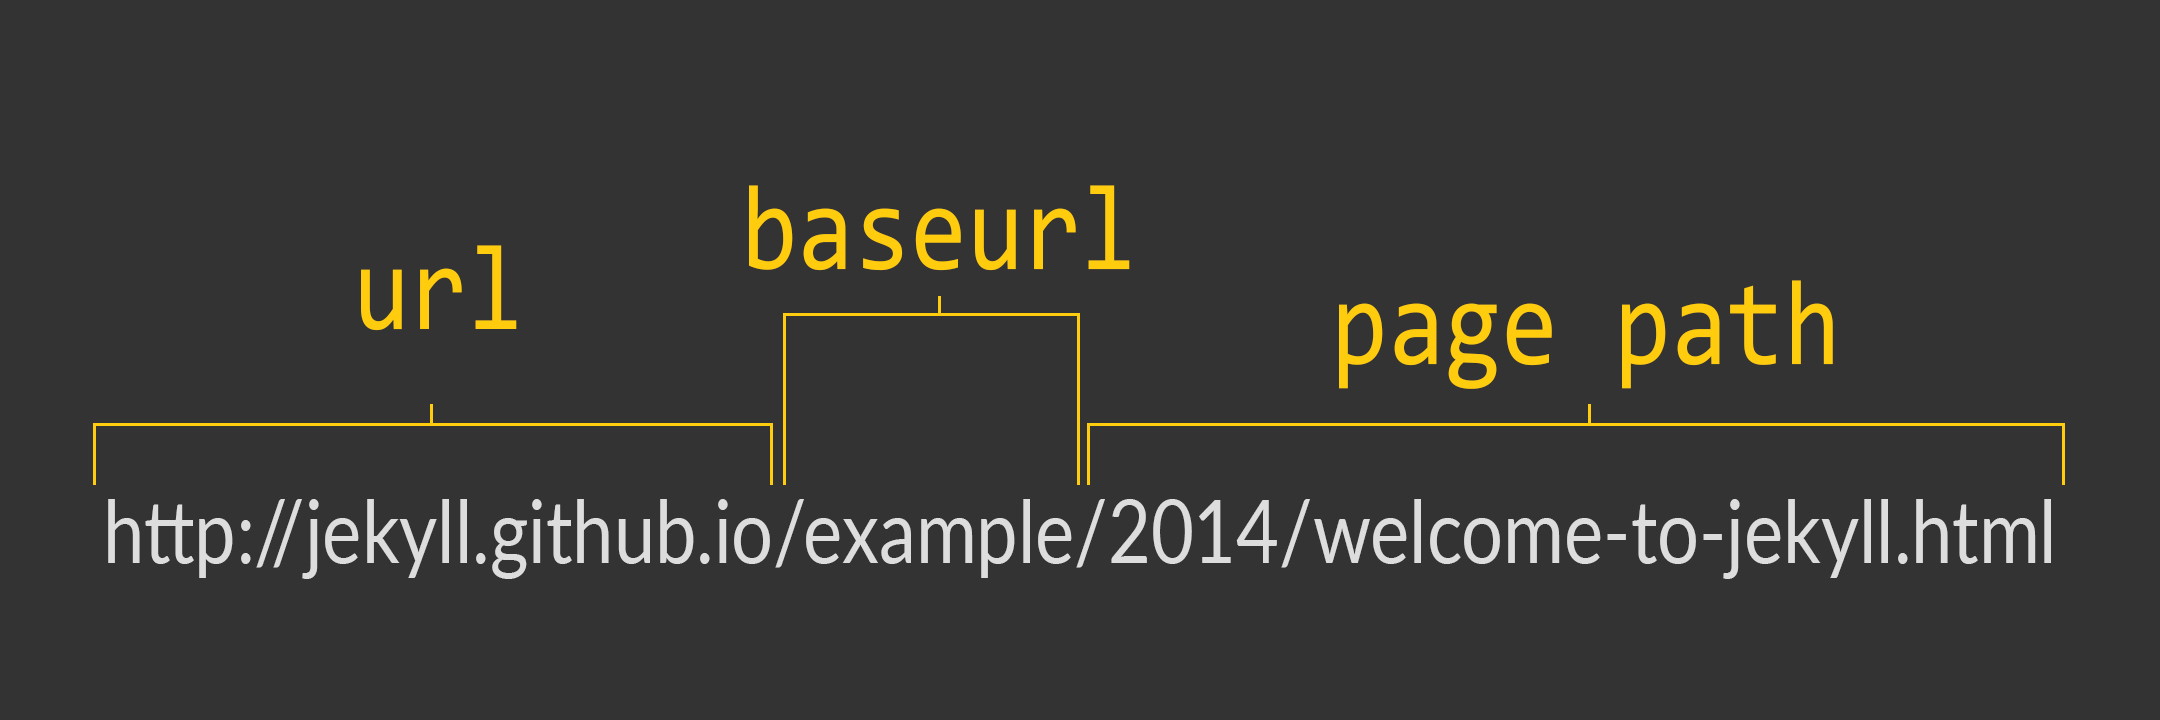 graphic explaining jekyll's baseurl